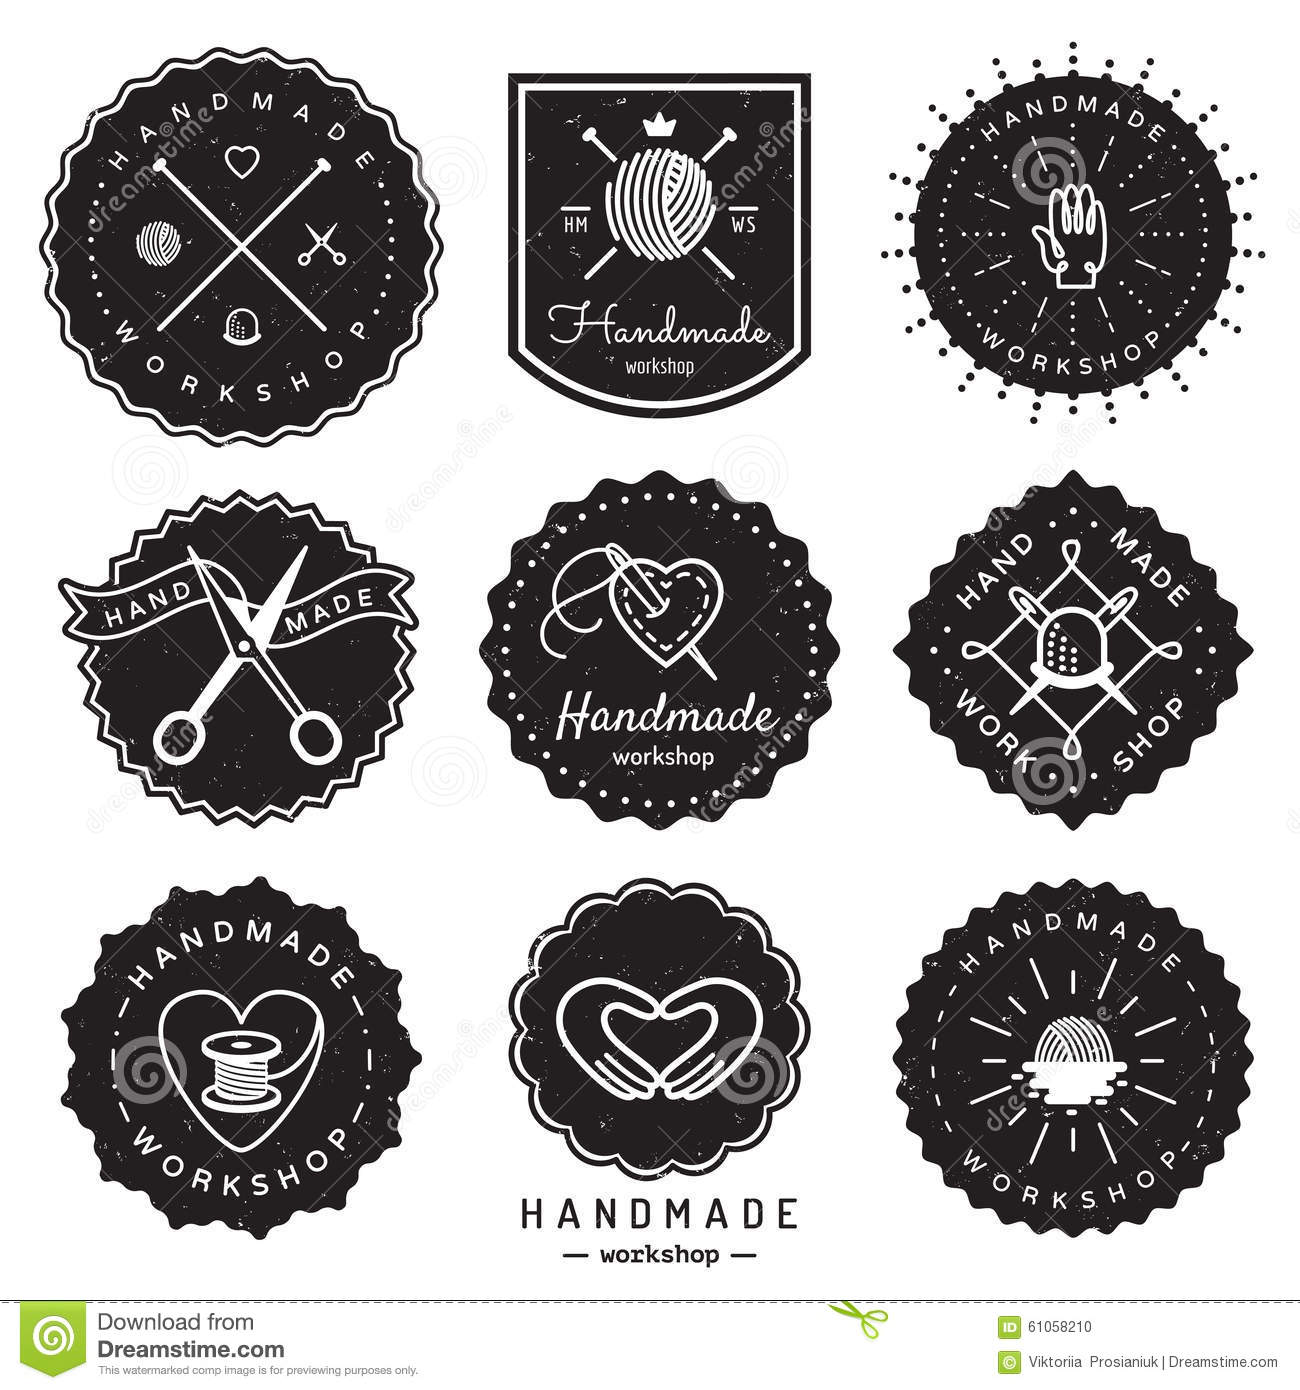 Handmade workshop logo vintage vector set hipster and retro style stock vector illustration - Retro stuhle gunstig ...